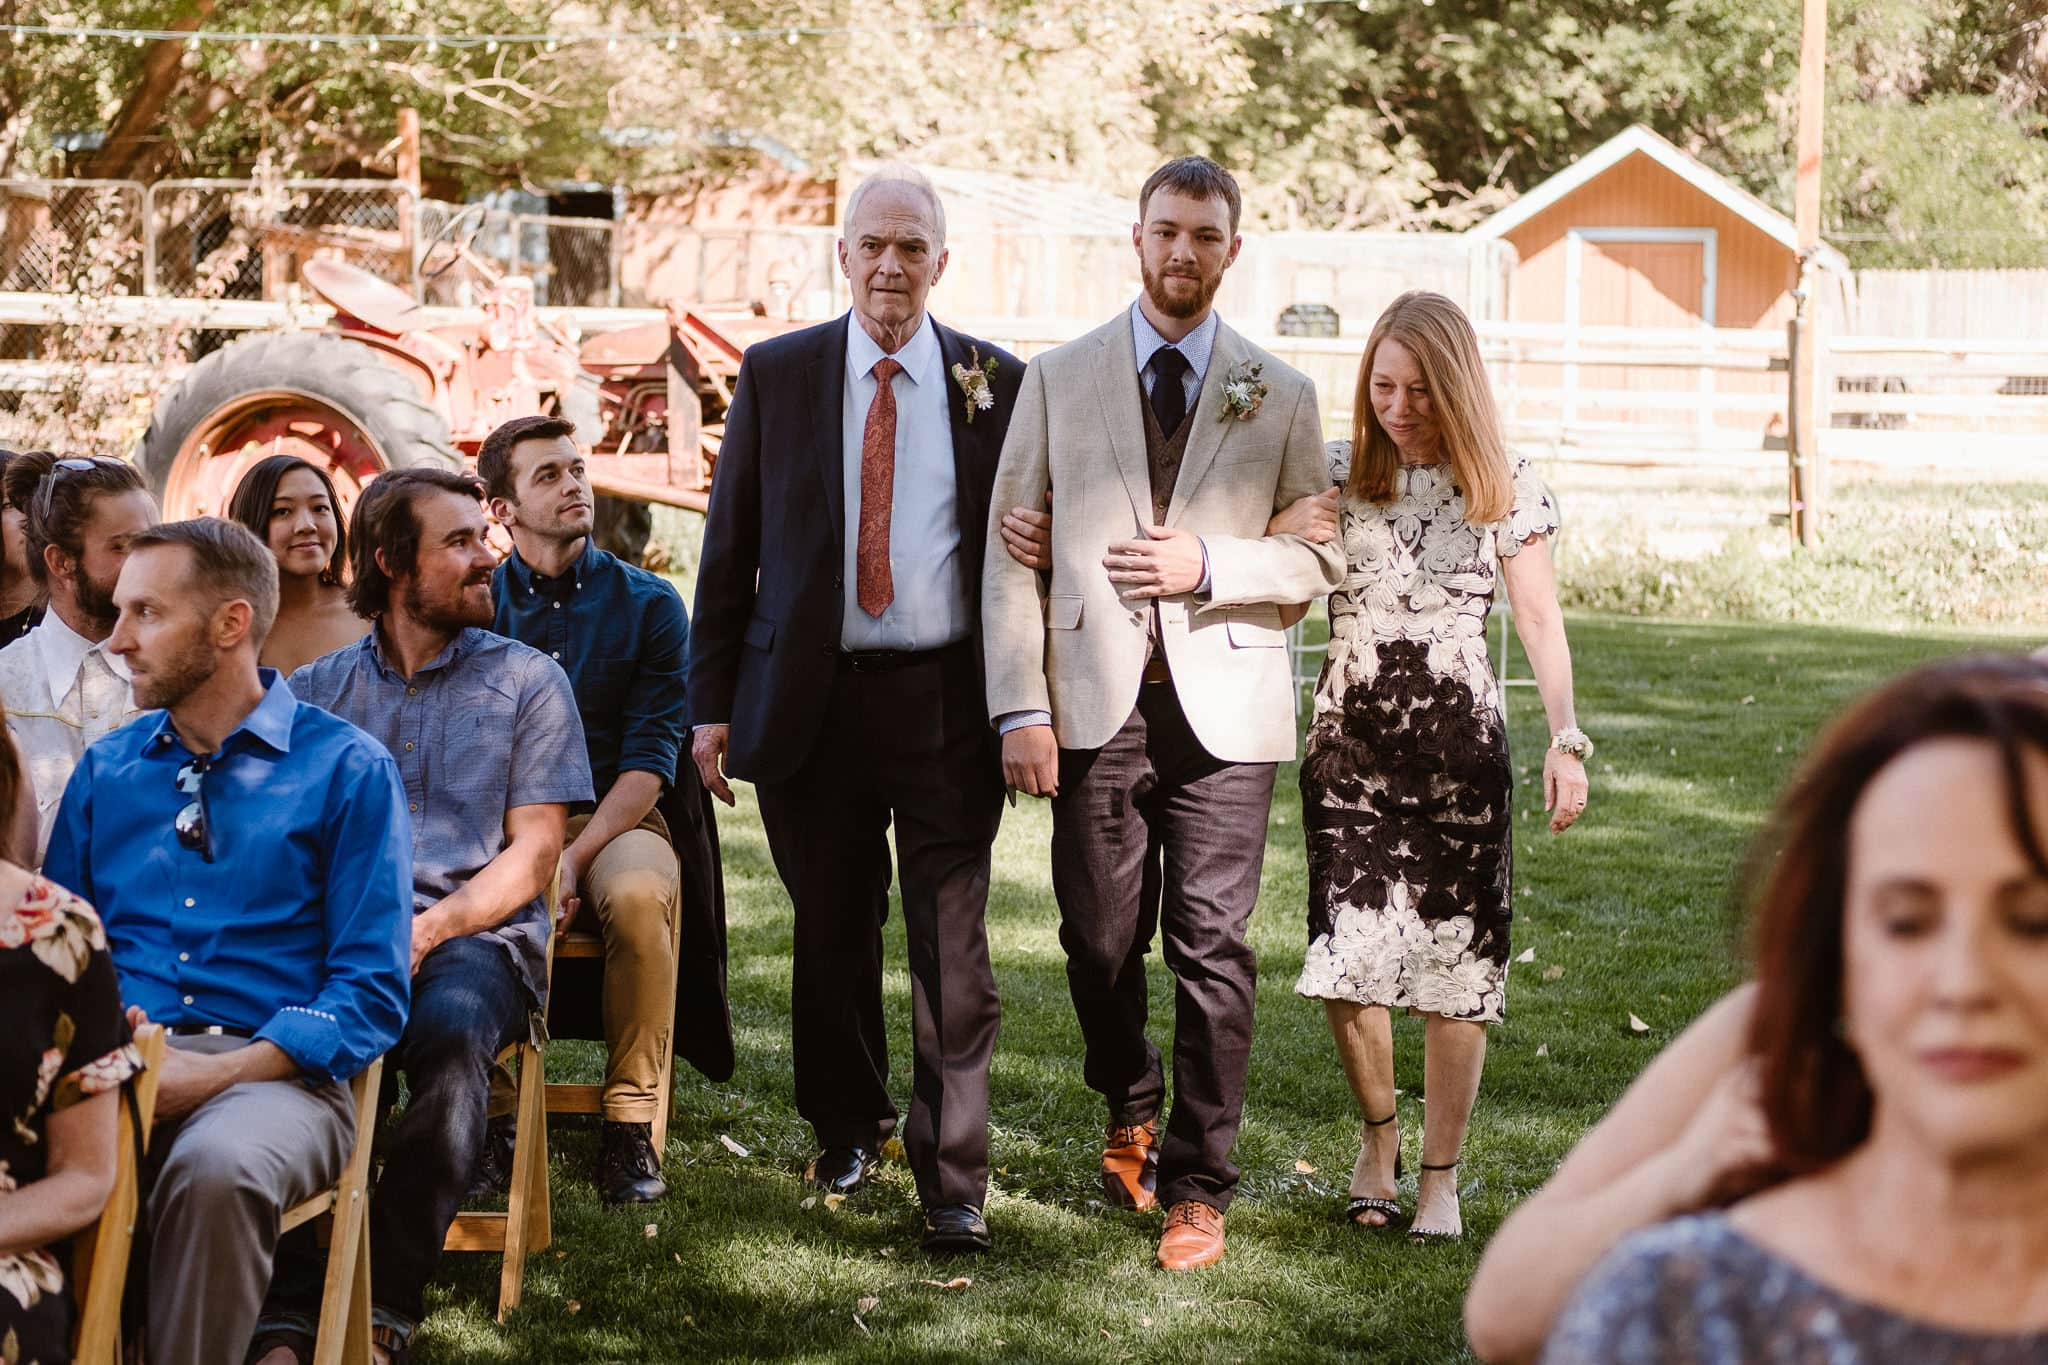 Lyons Farmette wedding photographer, Colorado intimate wedding photographer, wedding ceremony, groom walking down aisle with parents